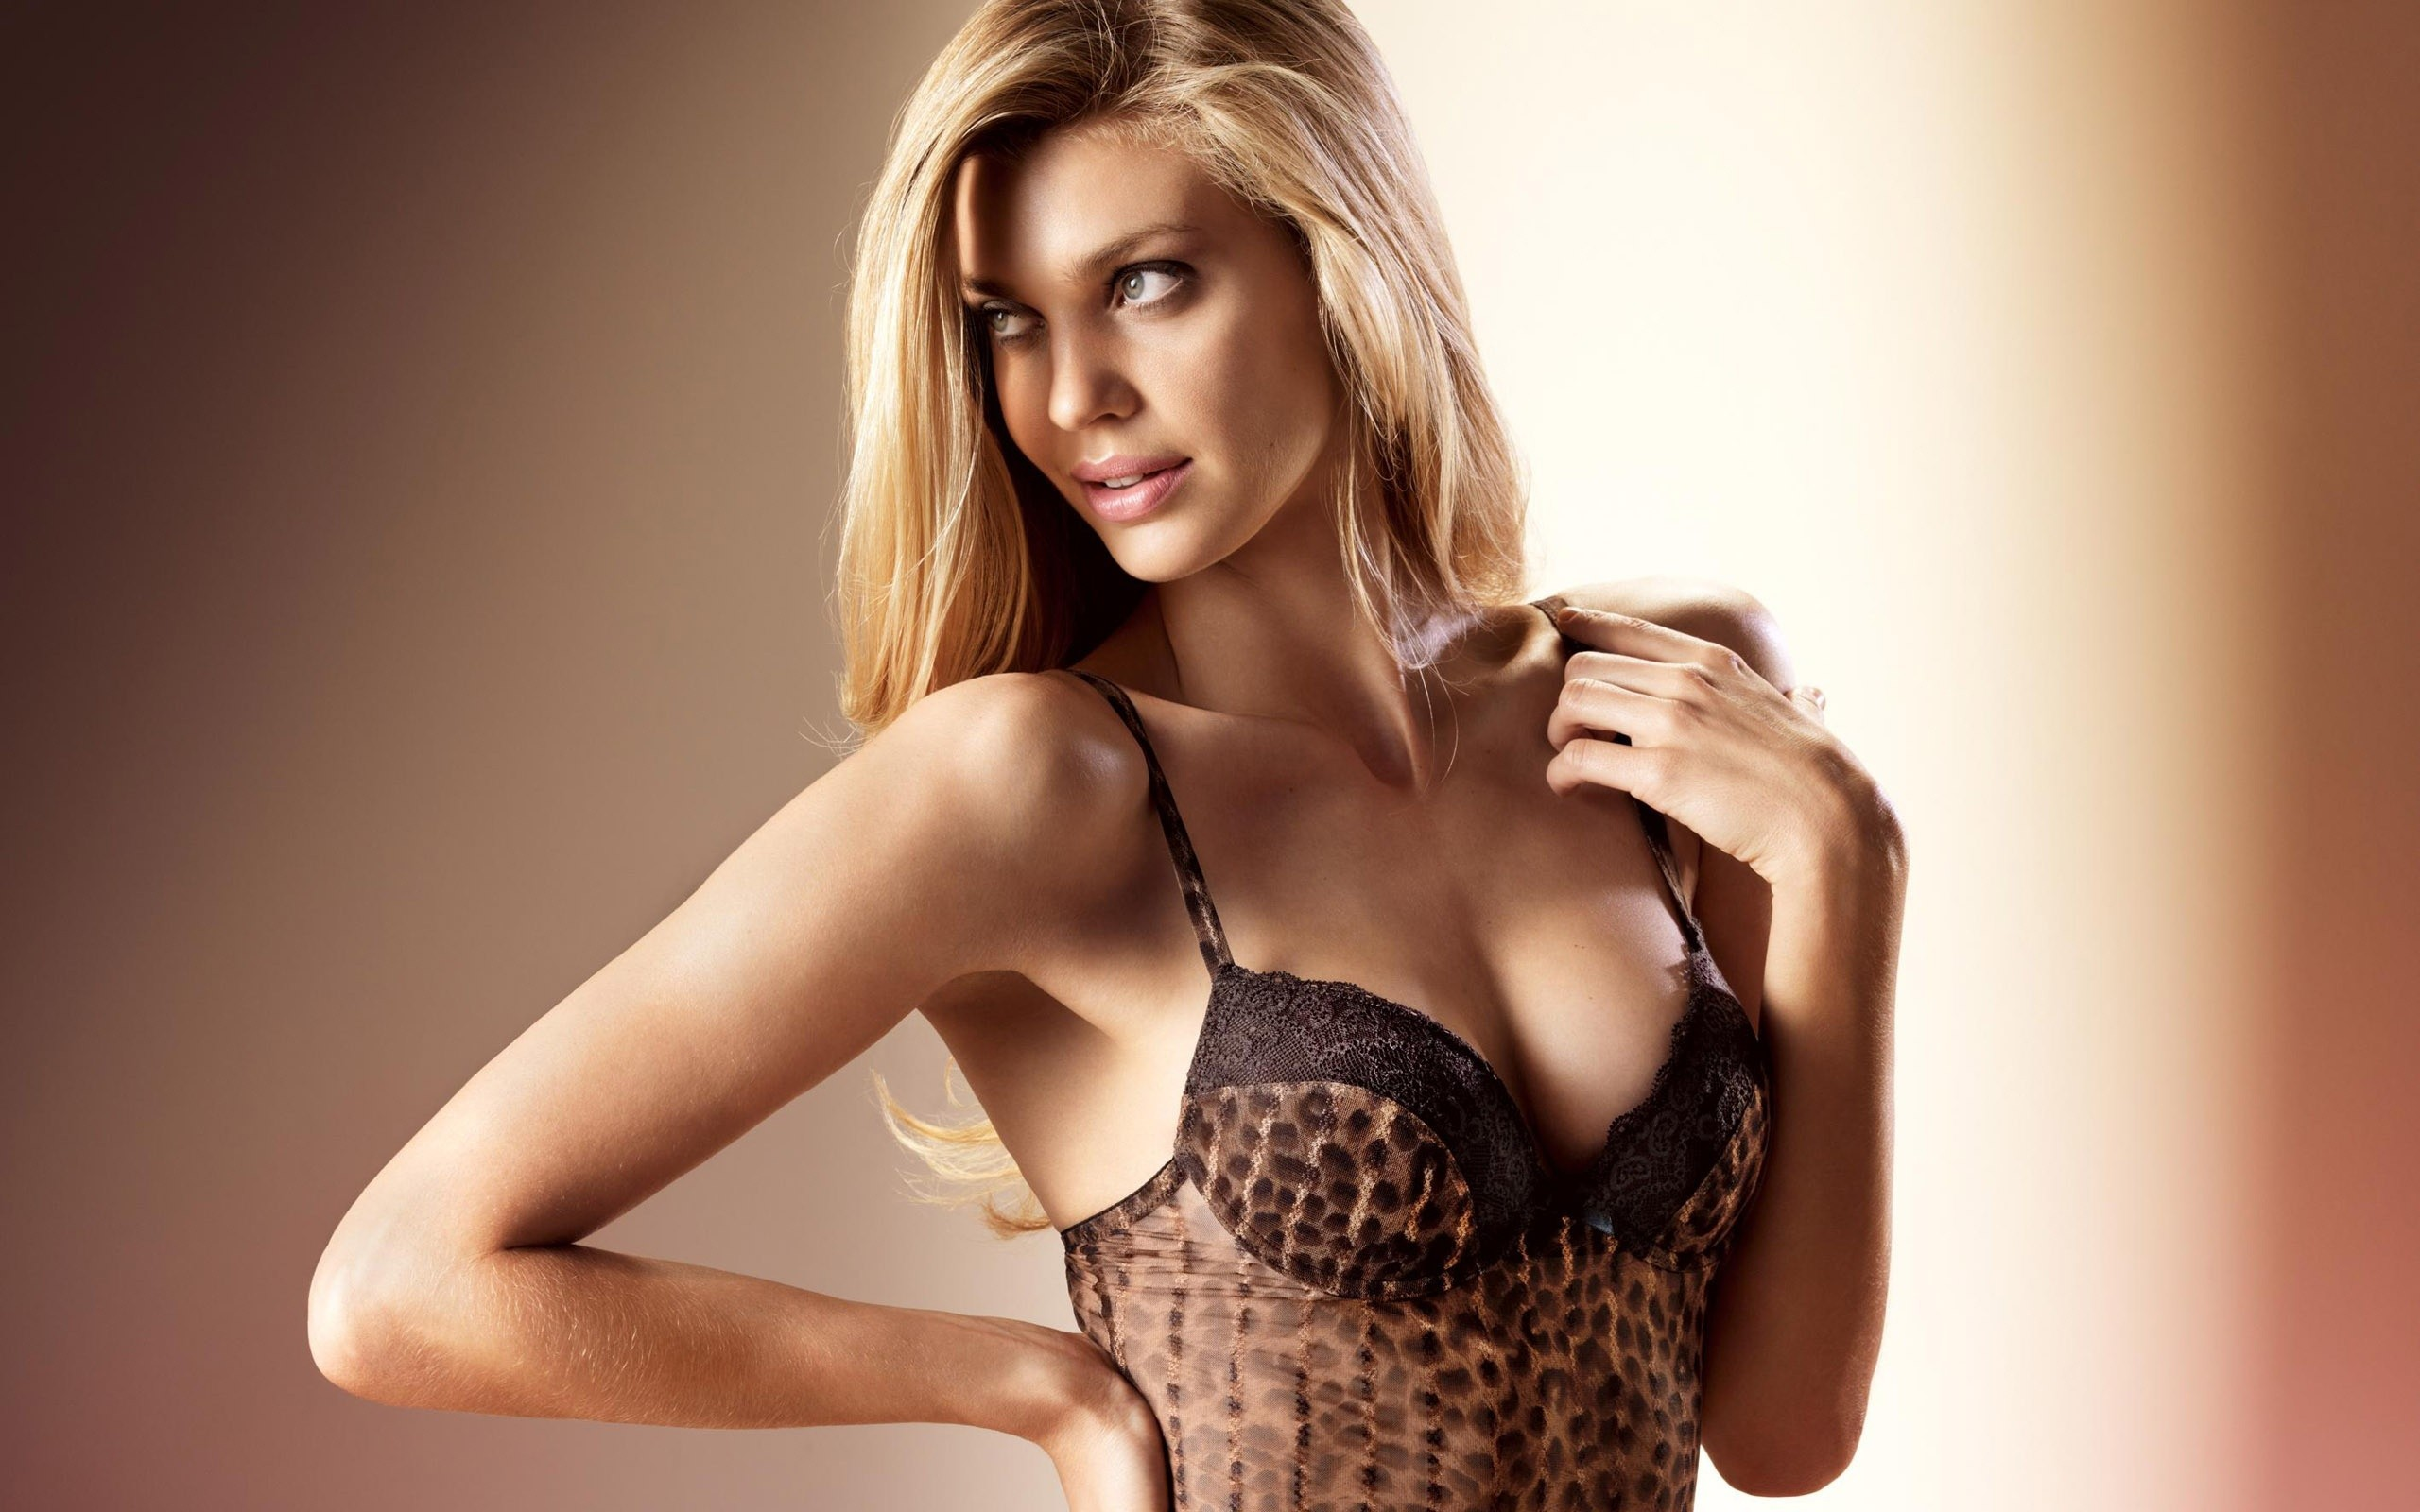 models palmers leopard Print HD Wallpaper